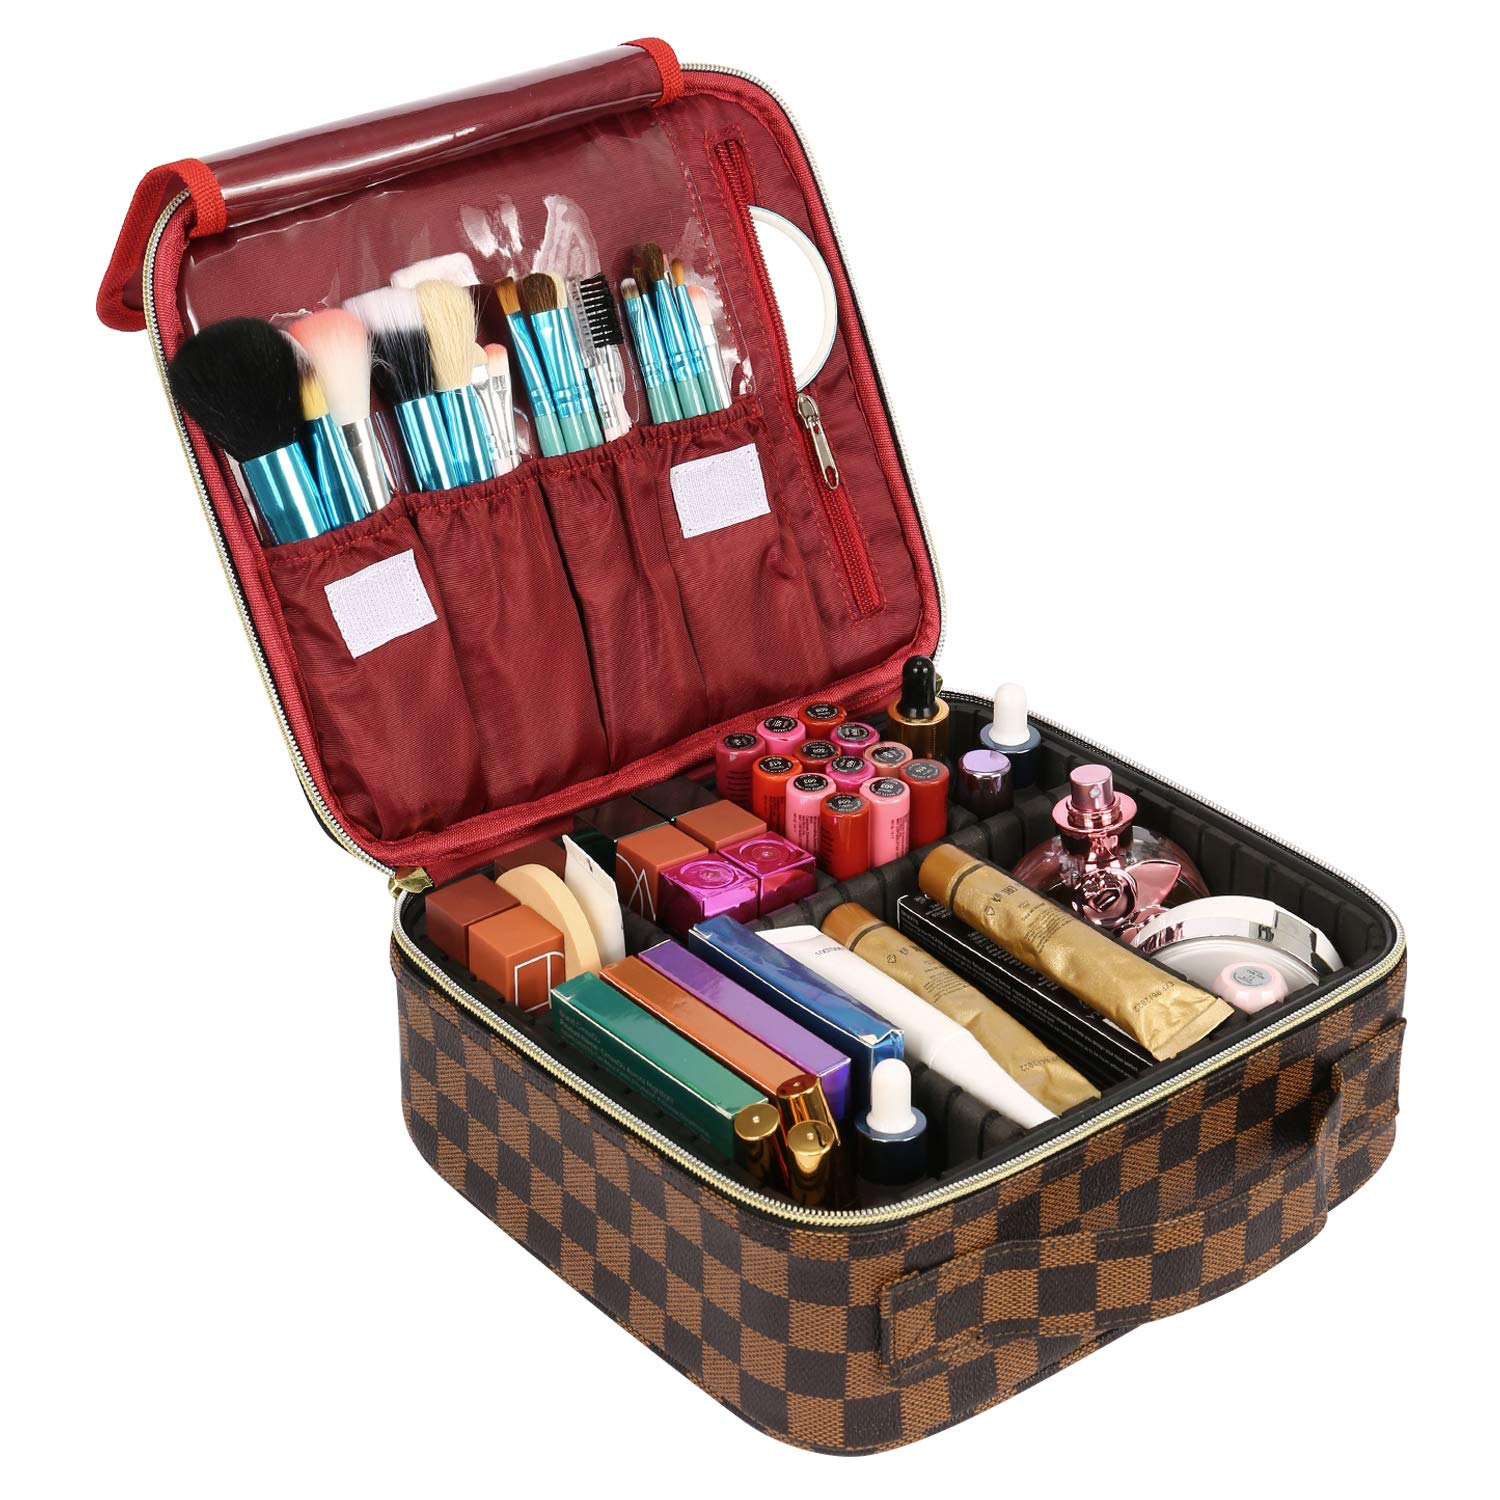 FOOXII Makeup Bag Travel Cosmetic Case Professional Train Case Large Make Up Storage Organizer with Removable Dividers, Hard Shell, Brush Section for Women Girls, Brown